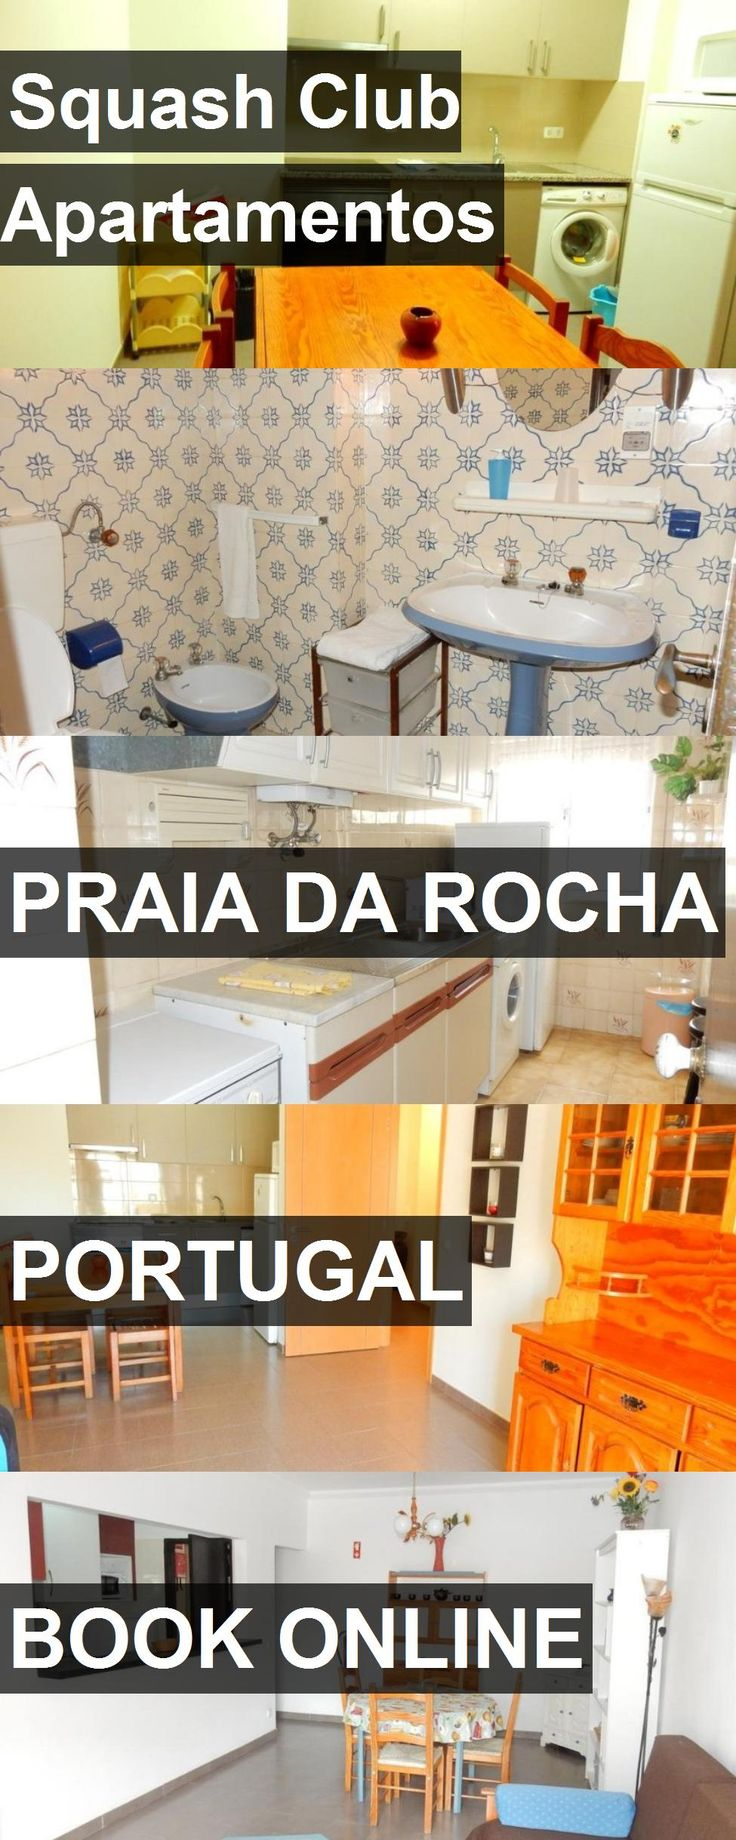 Hotel Squash Club Apartamentos in Praia da Rocha, Portugal. For more information, photos, reviews and best prices please follow the link. #Portugal #PraiadaRocha #SquashClubApartamentos #hotel #travel #vacation